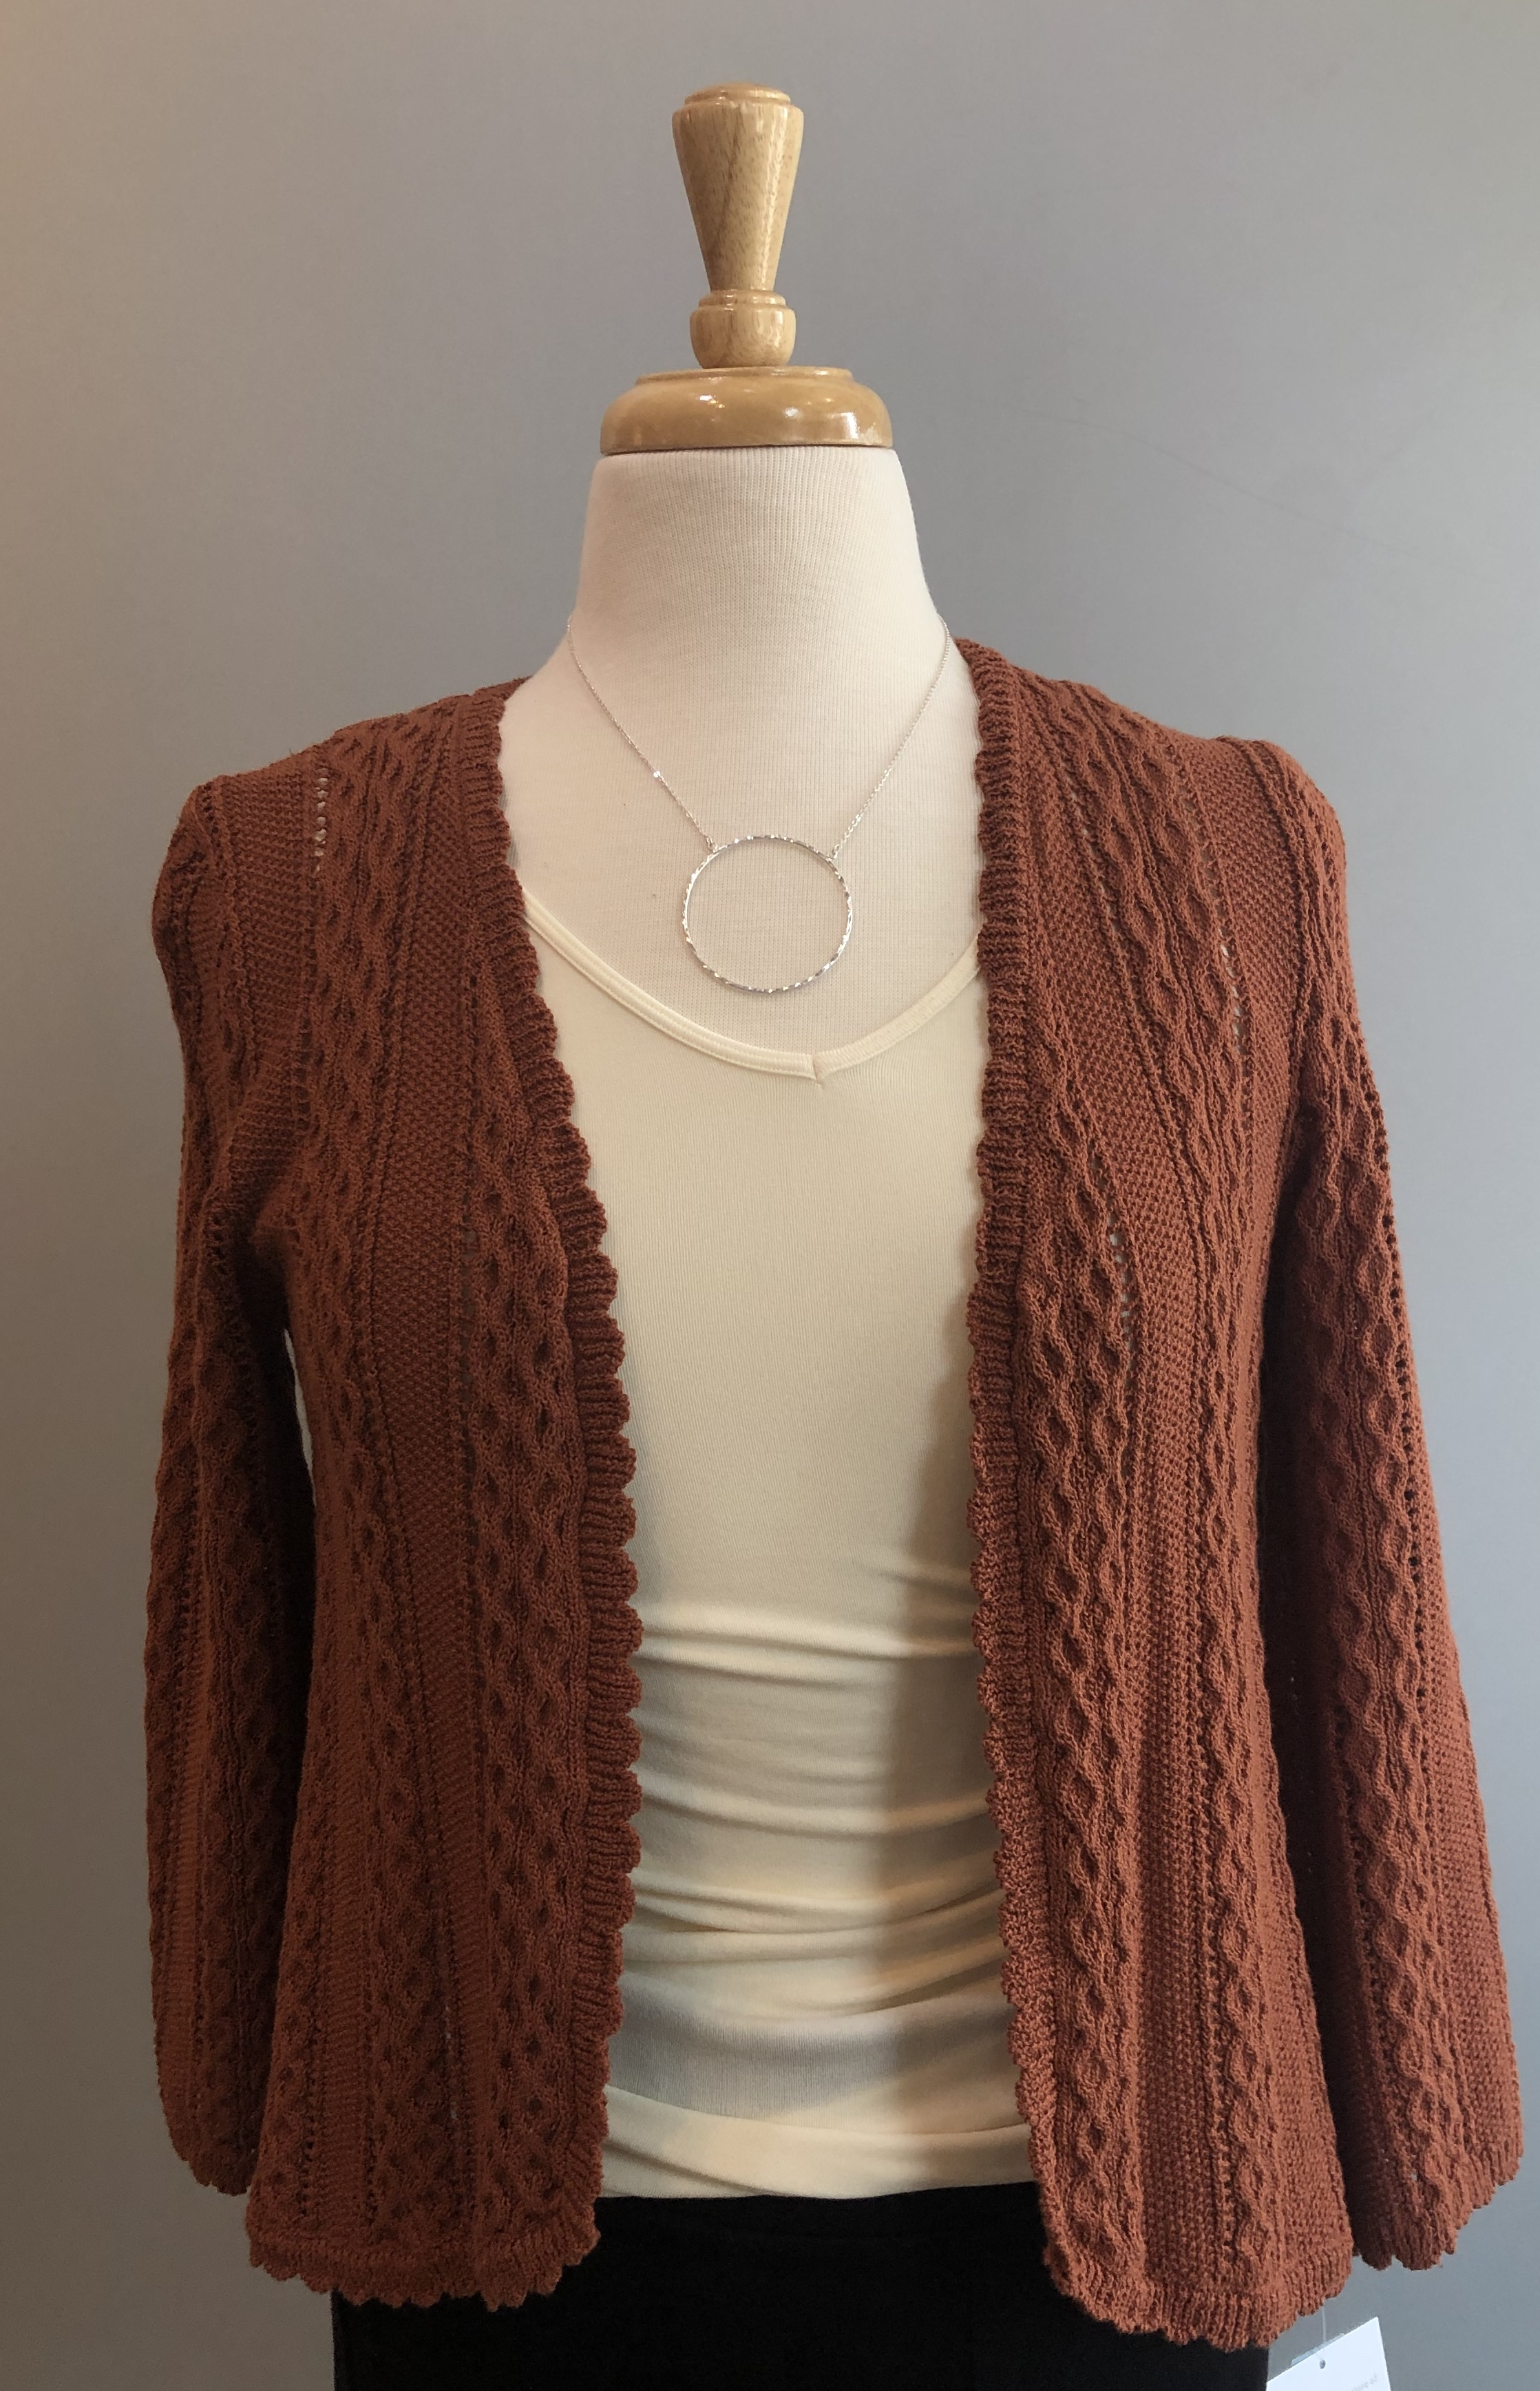 Skye's The Limit Cardigan $69